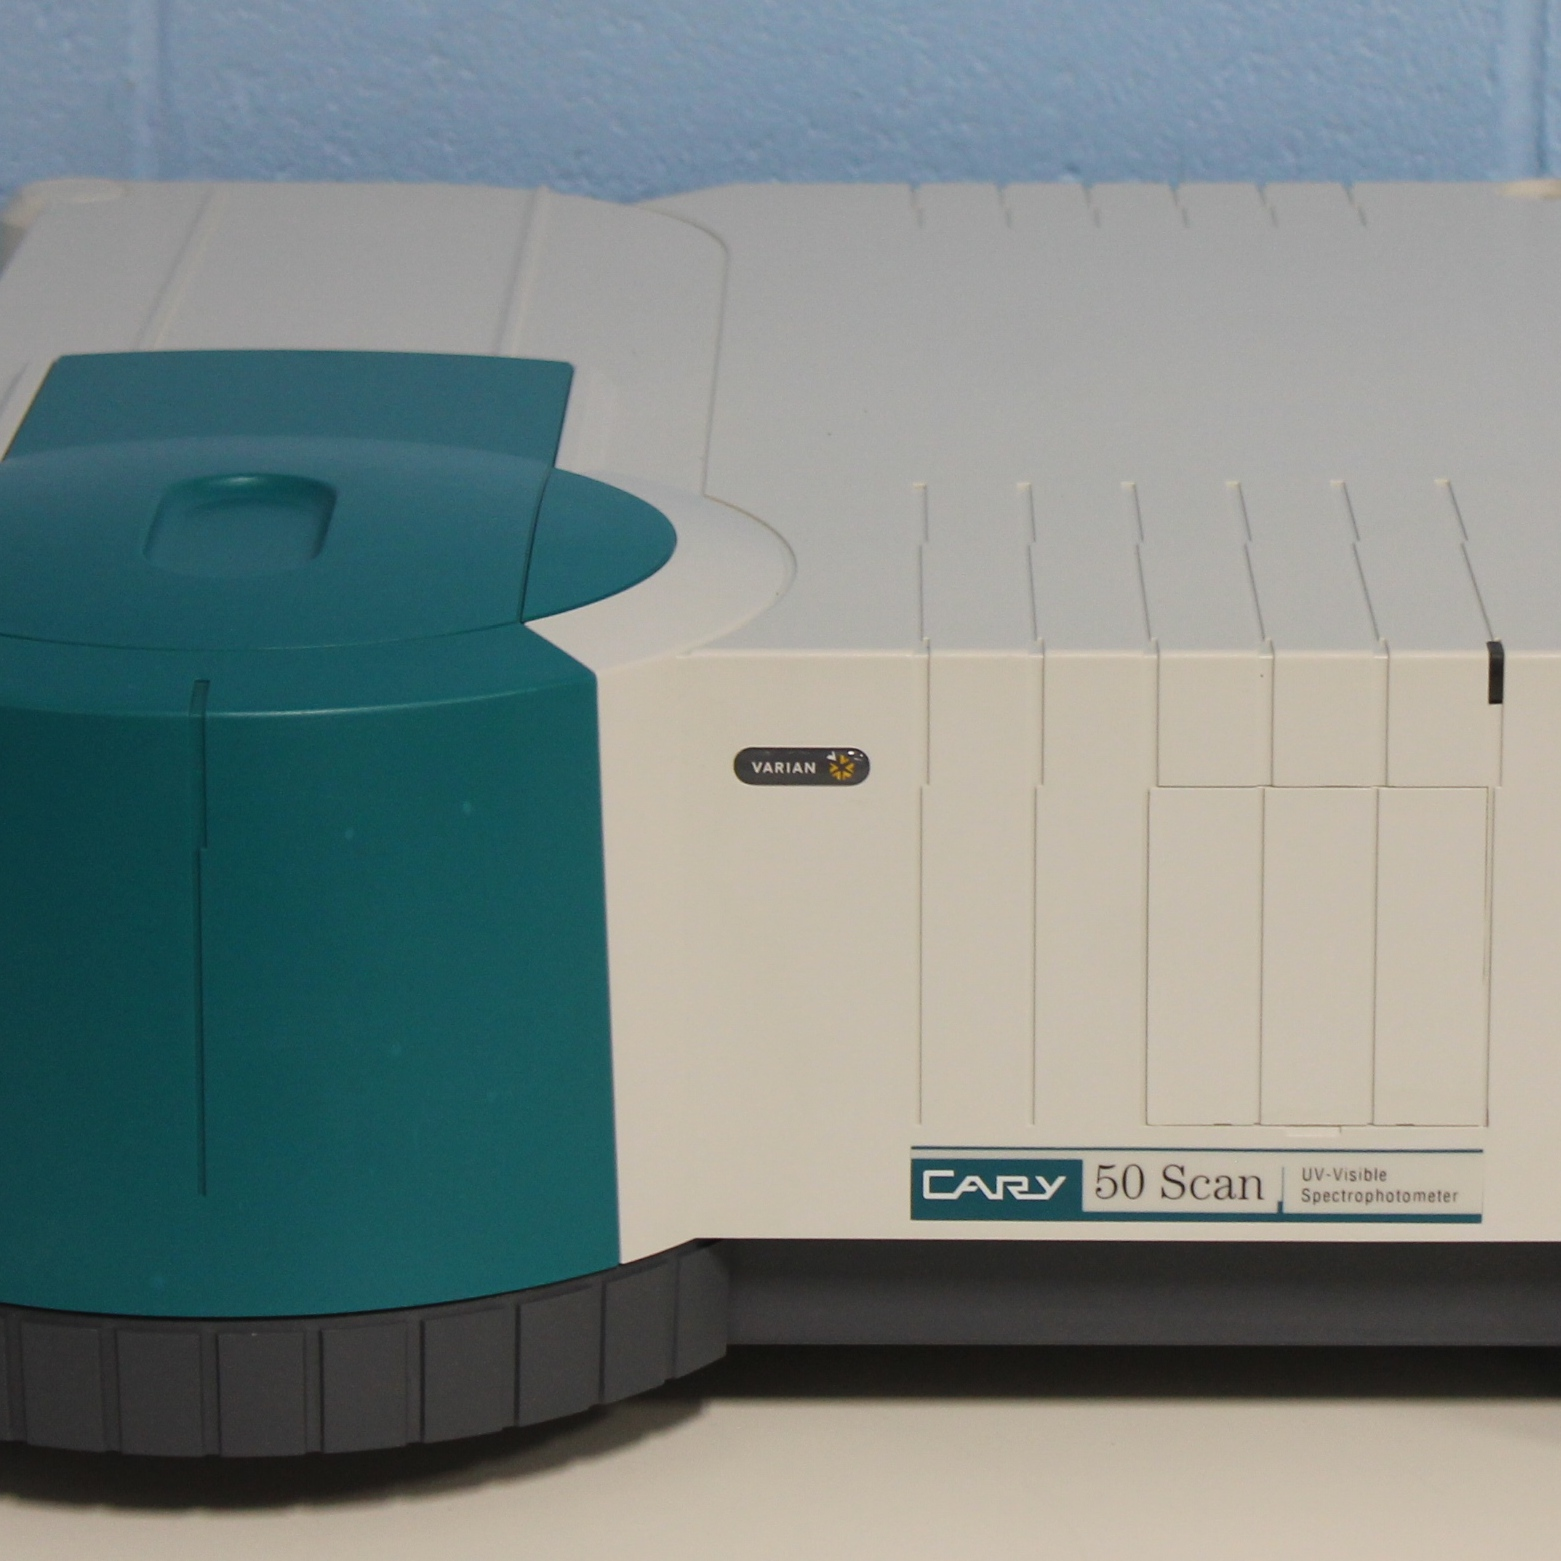 Varian Cary 50 Scan UV Visible Spectrophotometer Image